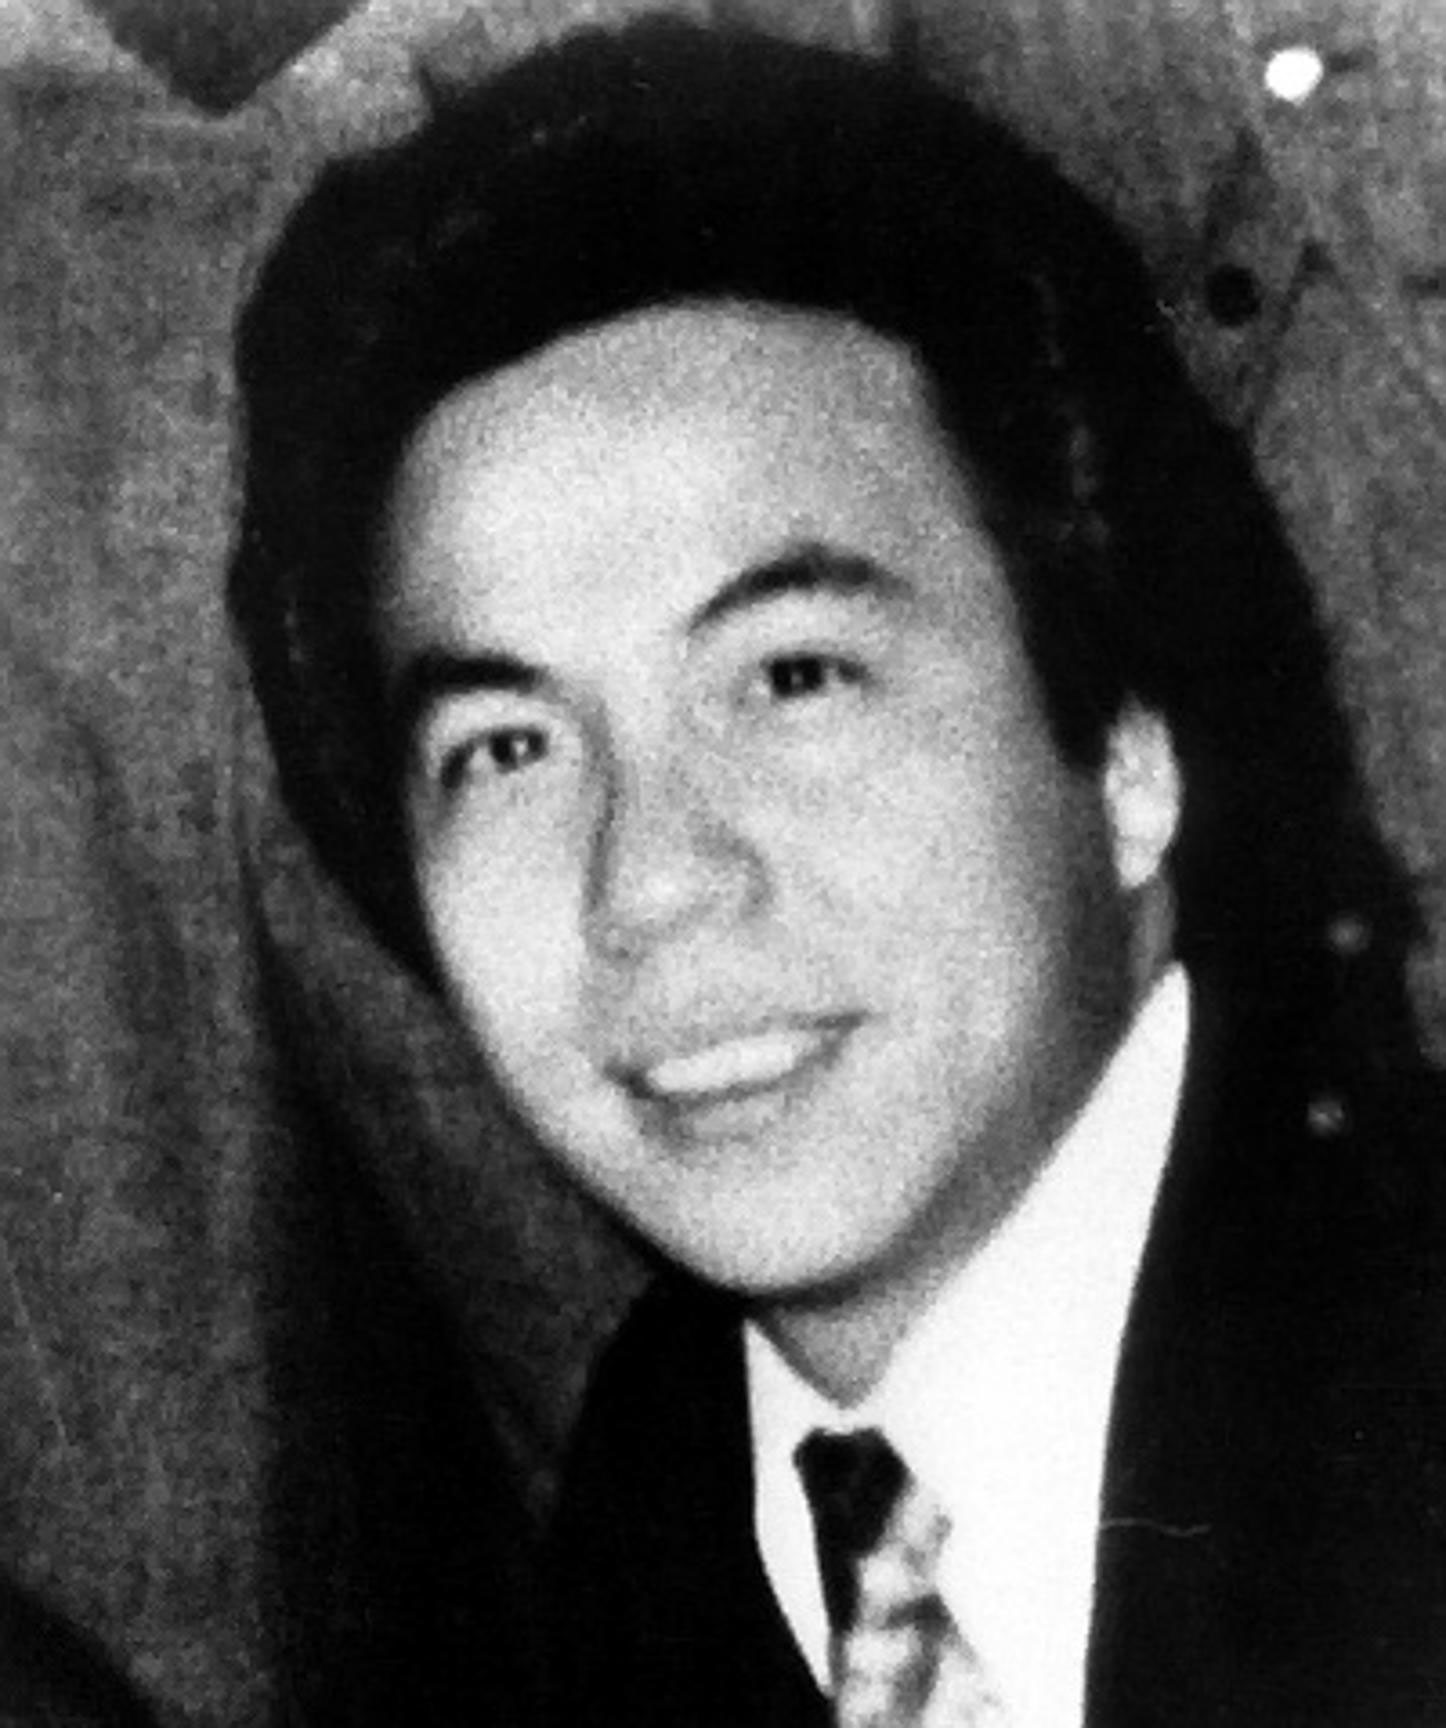 May 18, 1955: Vincent Chin, Who Was Killed in a Hate Crime, Is Born